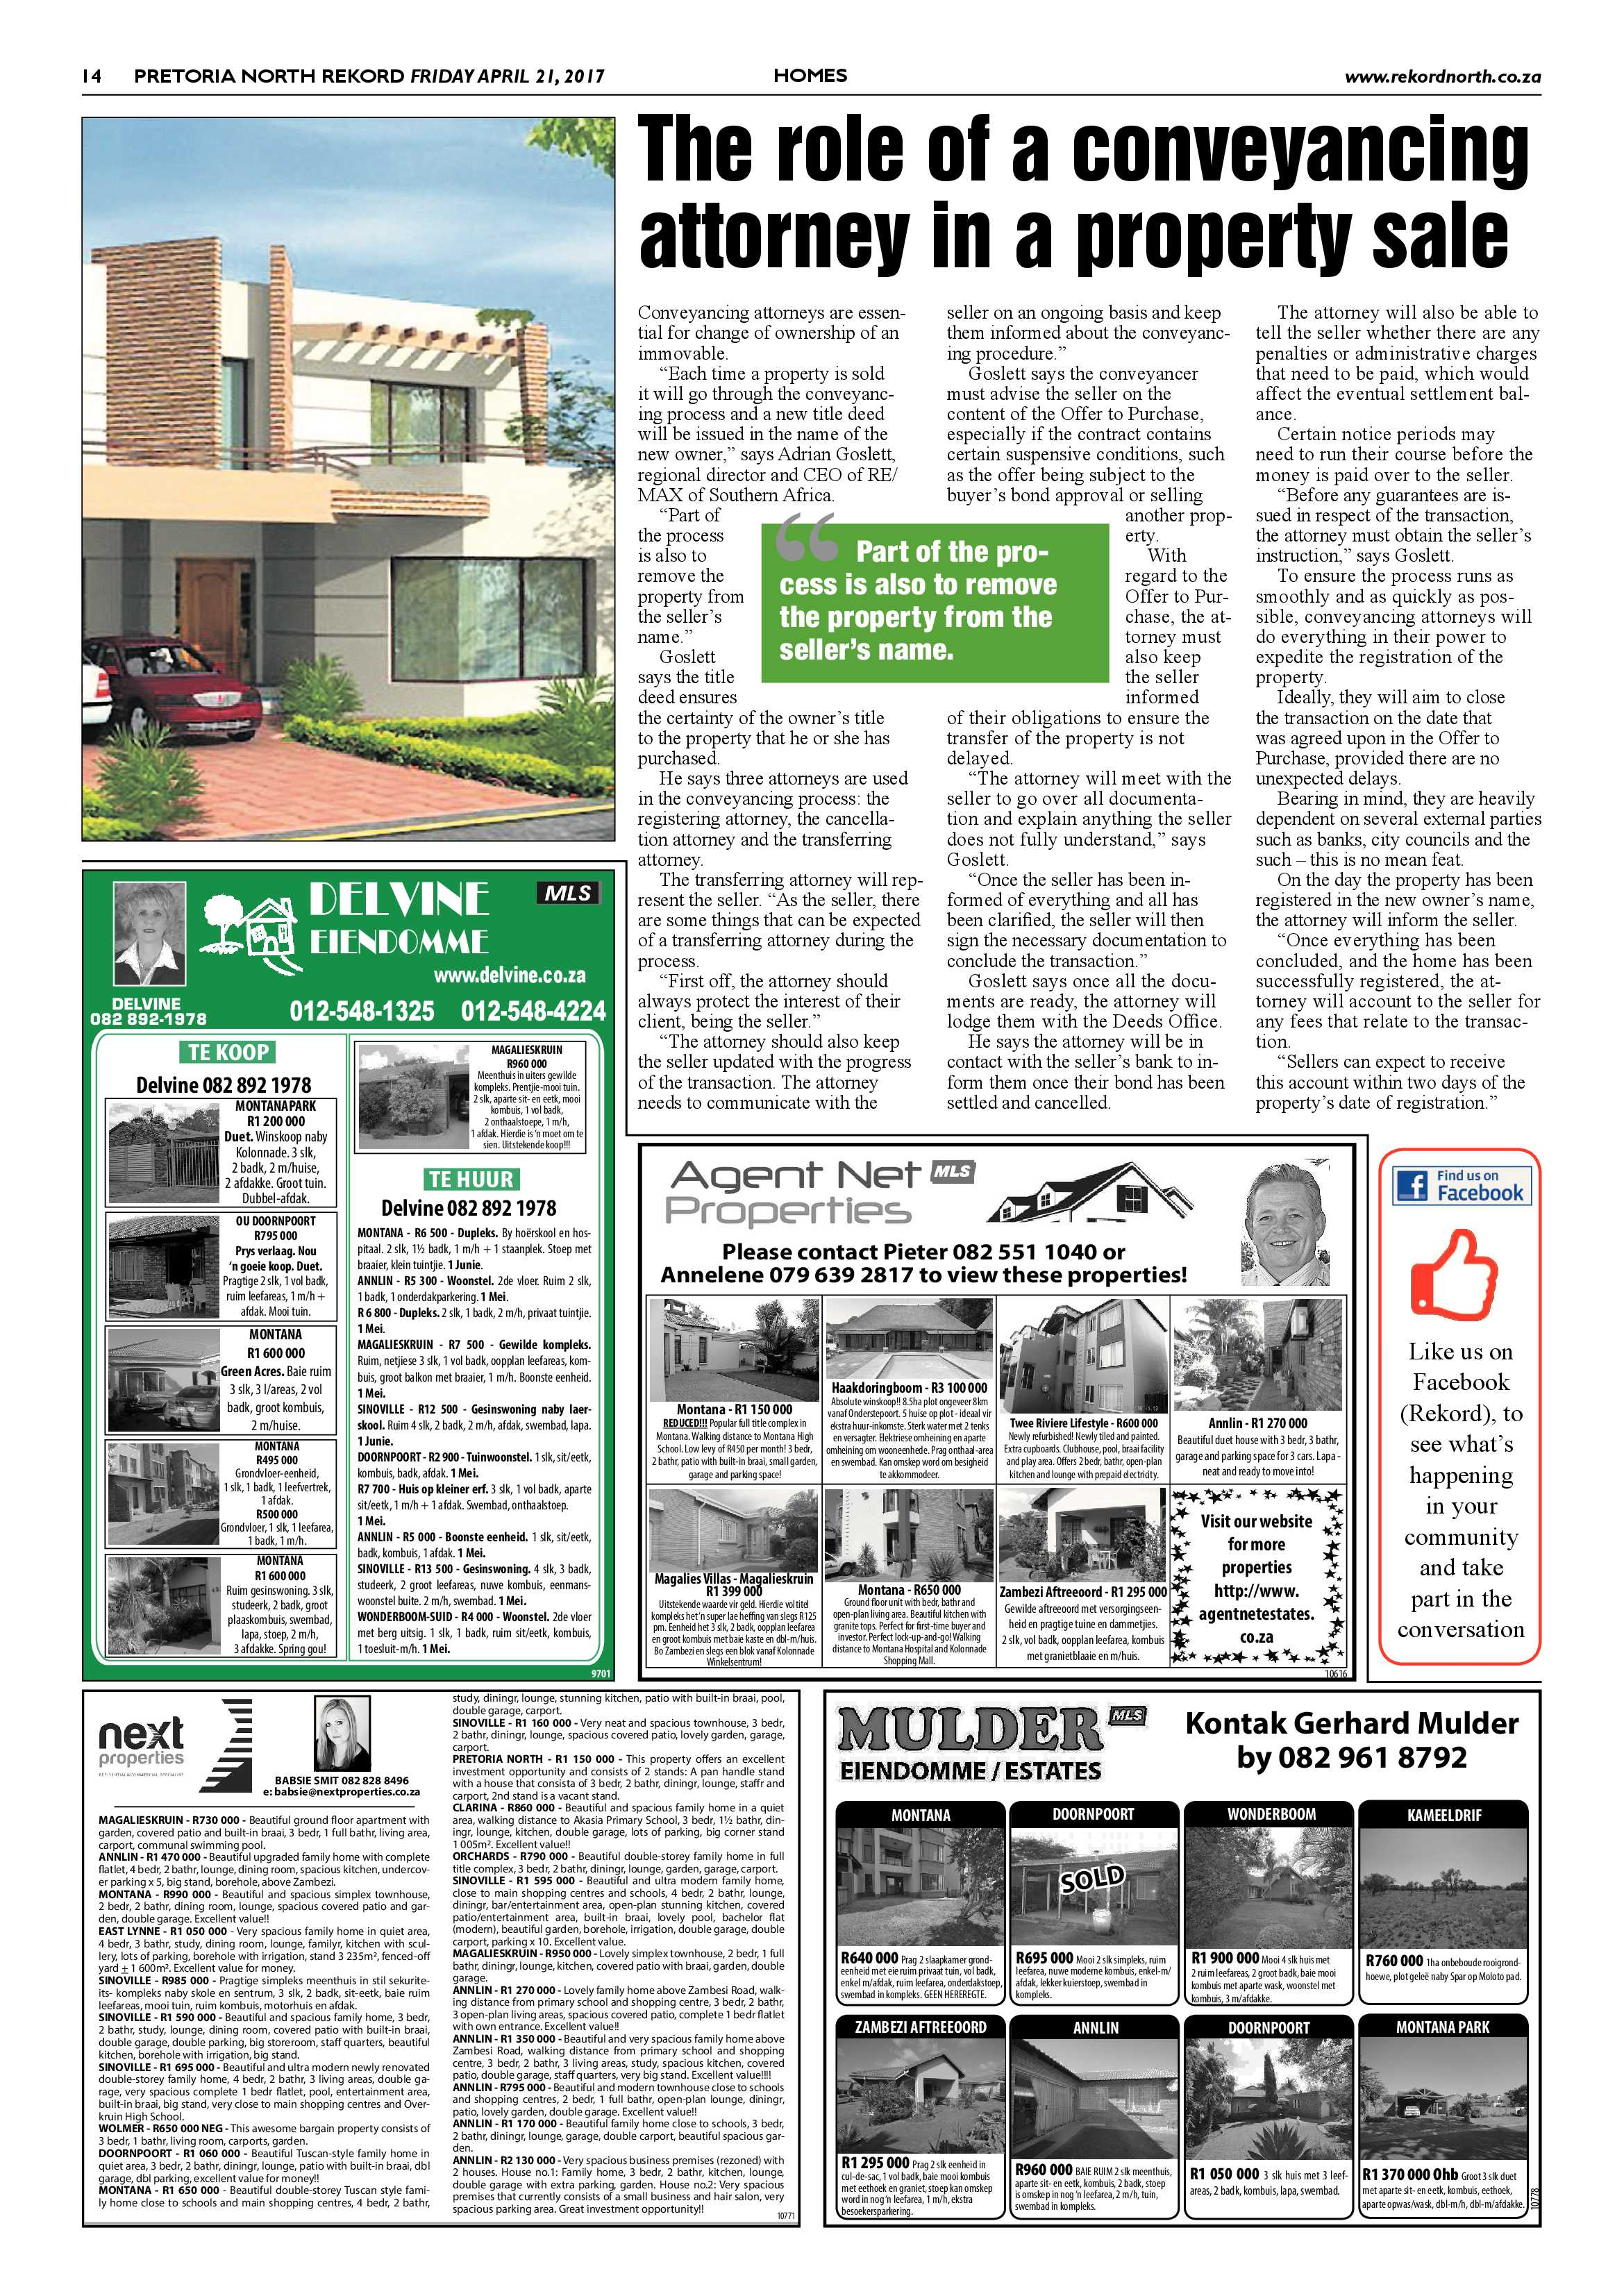 rekord-north-21-april-2017-epapers-page-14